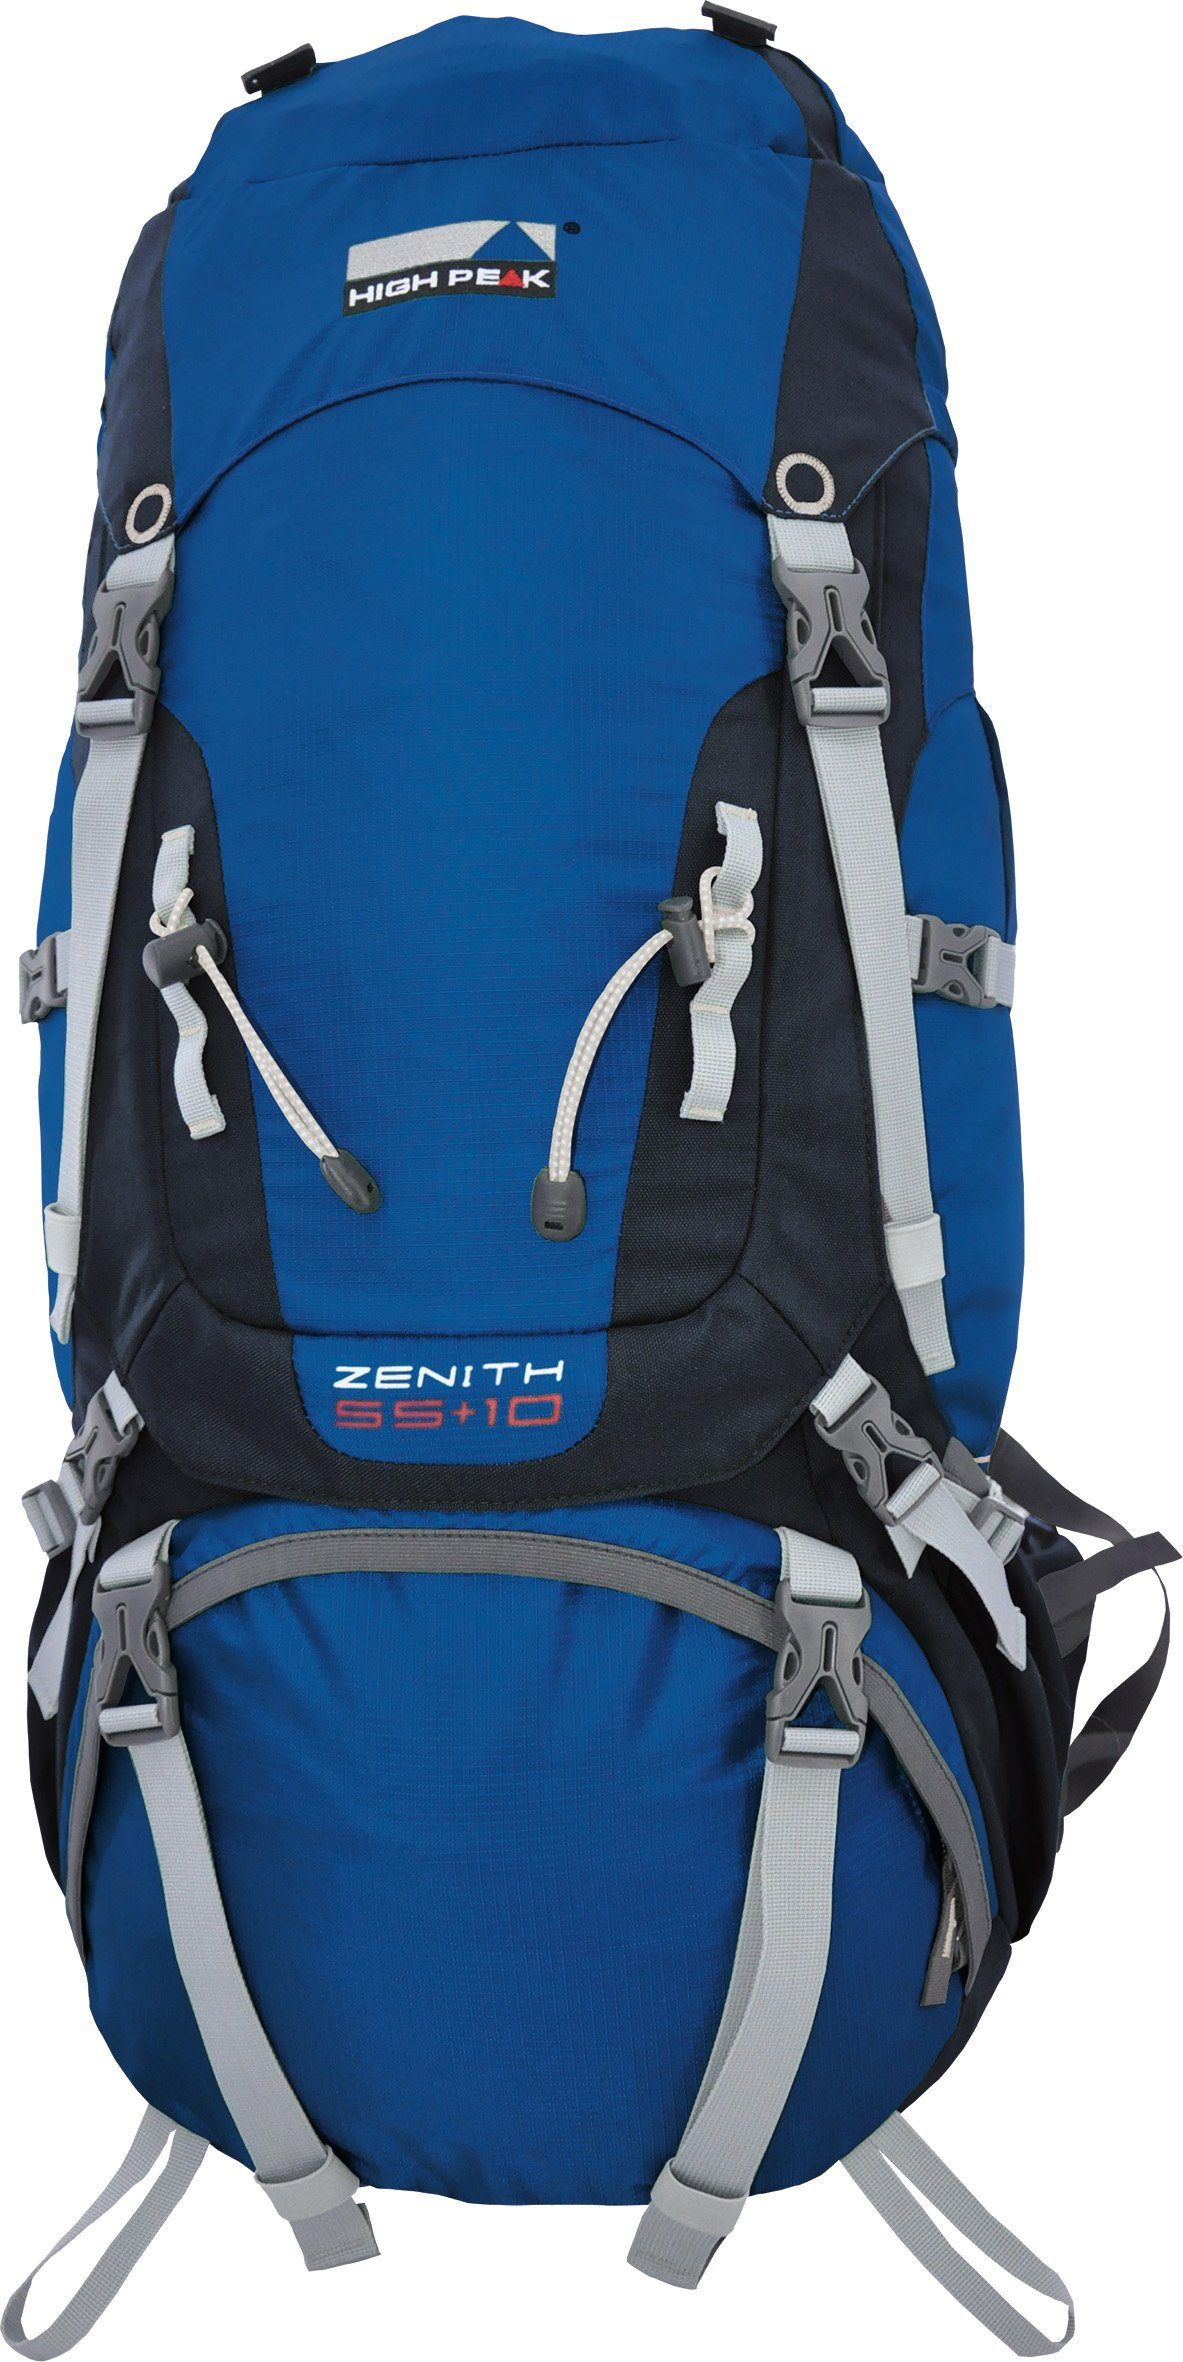 High Peak Tourenrucksack, »Zenith 55+10«